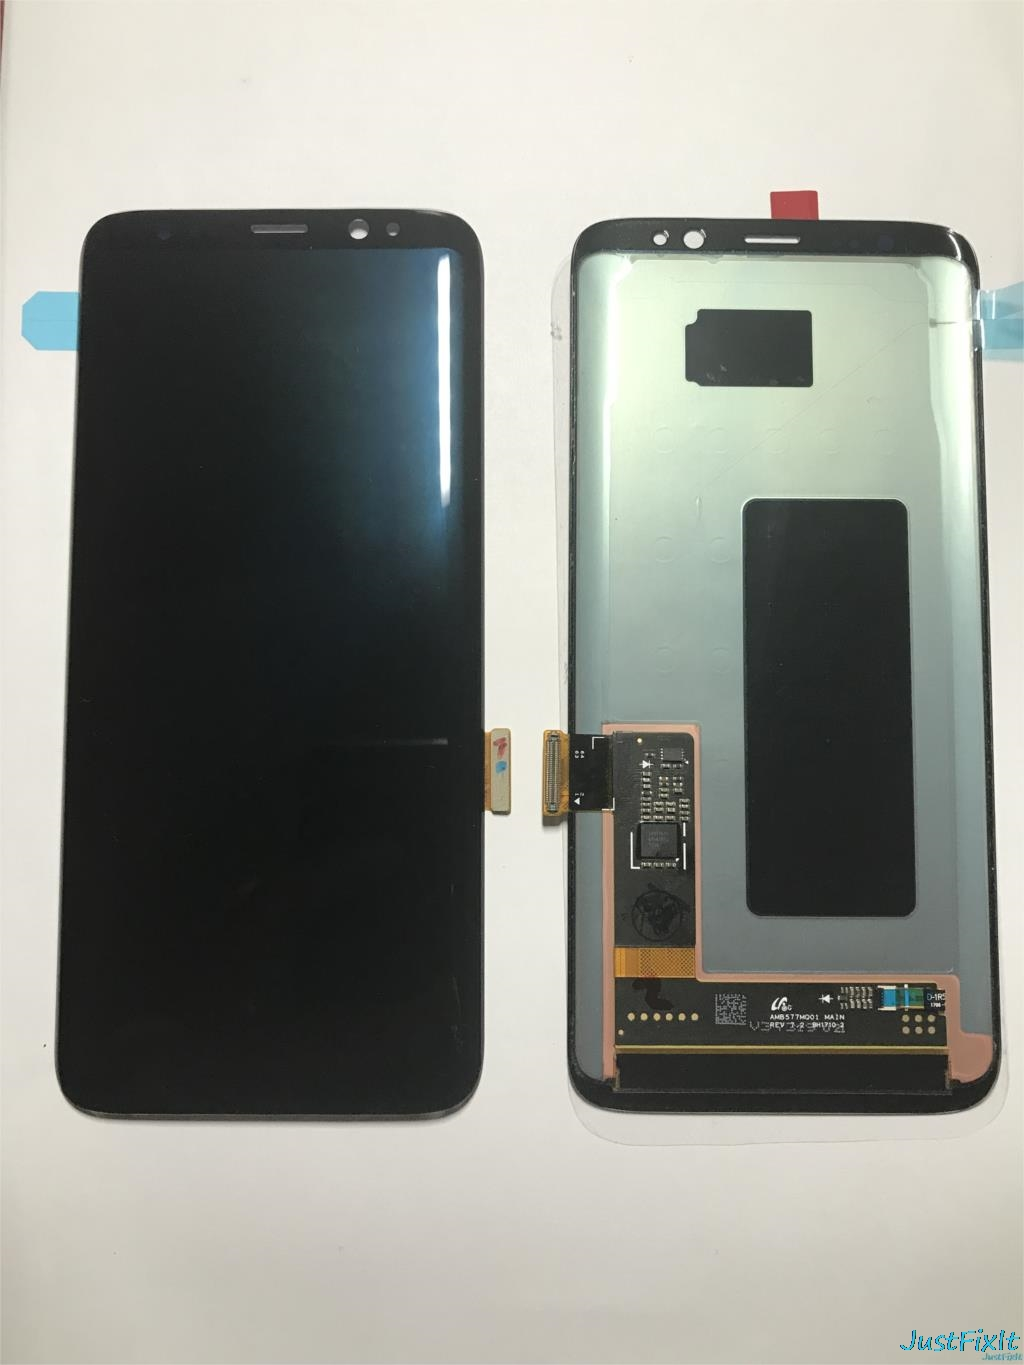 Original For <font><b>Samsung</b></font> Galaxy <font><b>S8</b></font> G950F G950A <font><b>G950FD</b></font> Burn-in Shadow lcd <font><b>display</b></font> with touch screen Digitizer Super AMOLED Screen image